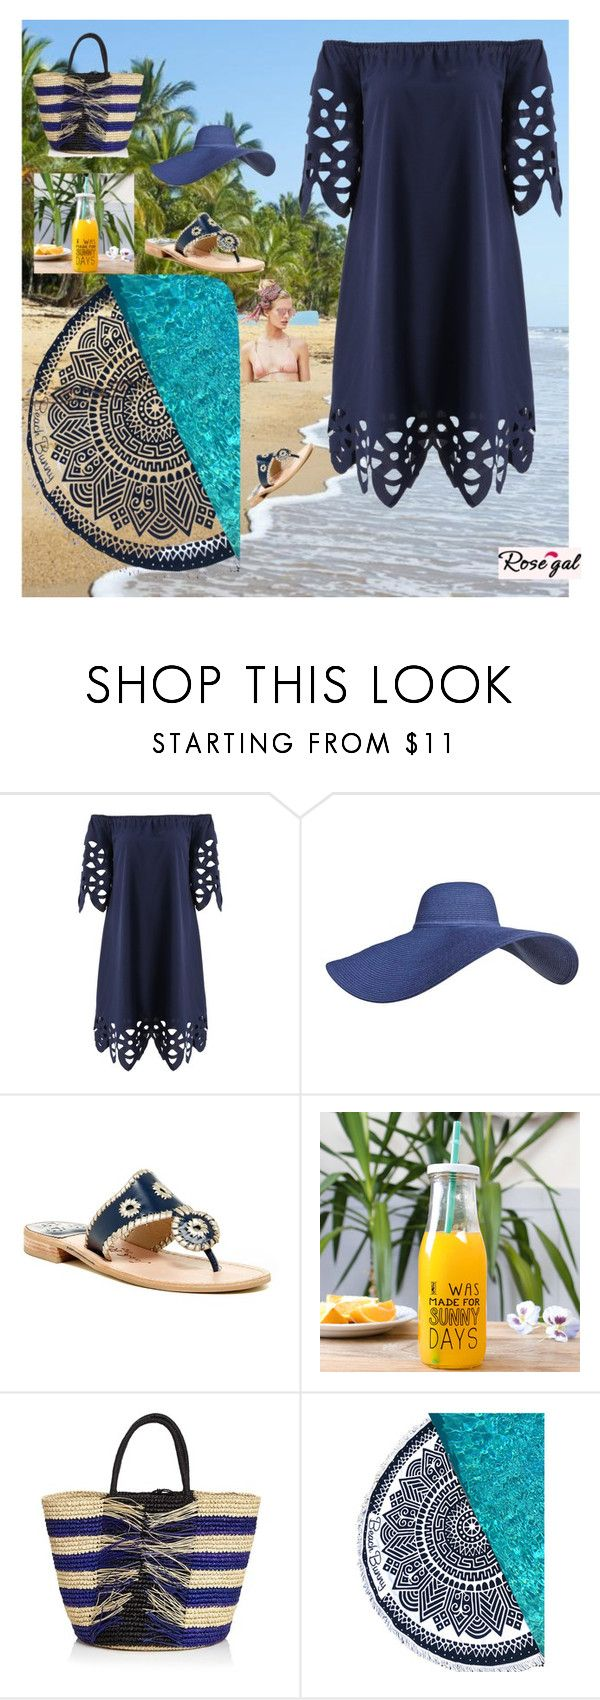 """Rosegal"" by emina-ahmetovic ❤ liked on Polyvore featuring Beach Riot, Jack Rogers, Dibor, Sensi Studio and Beach Bunny"